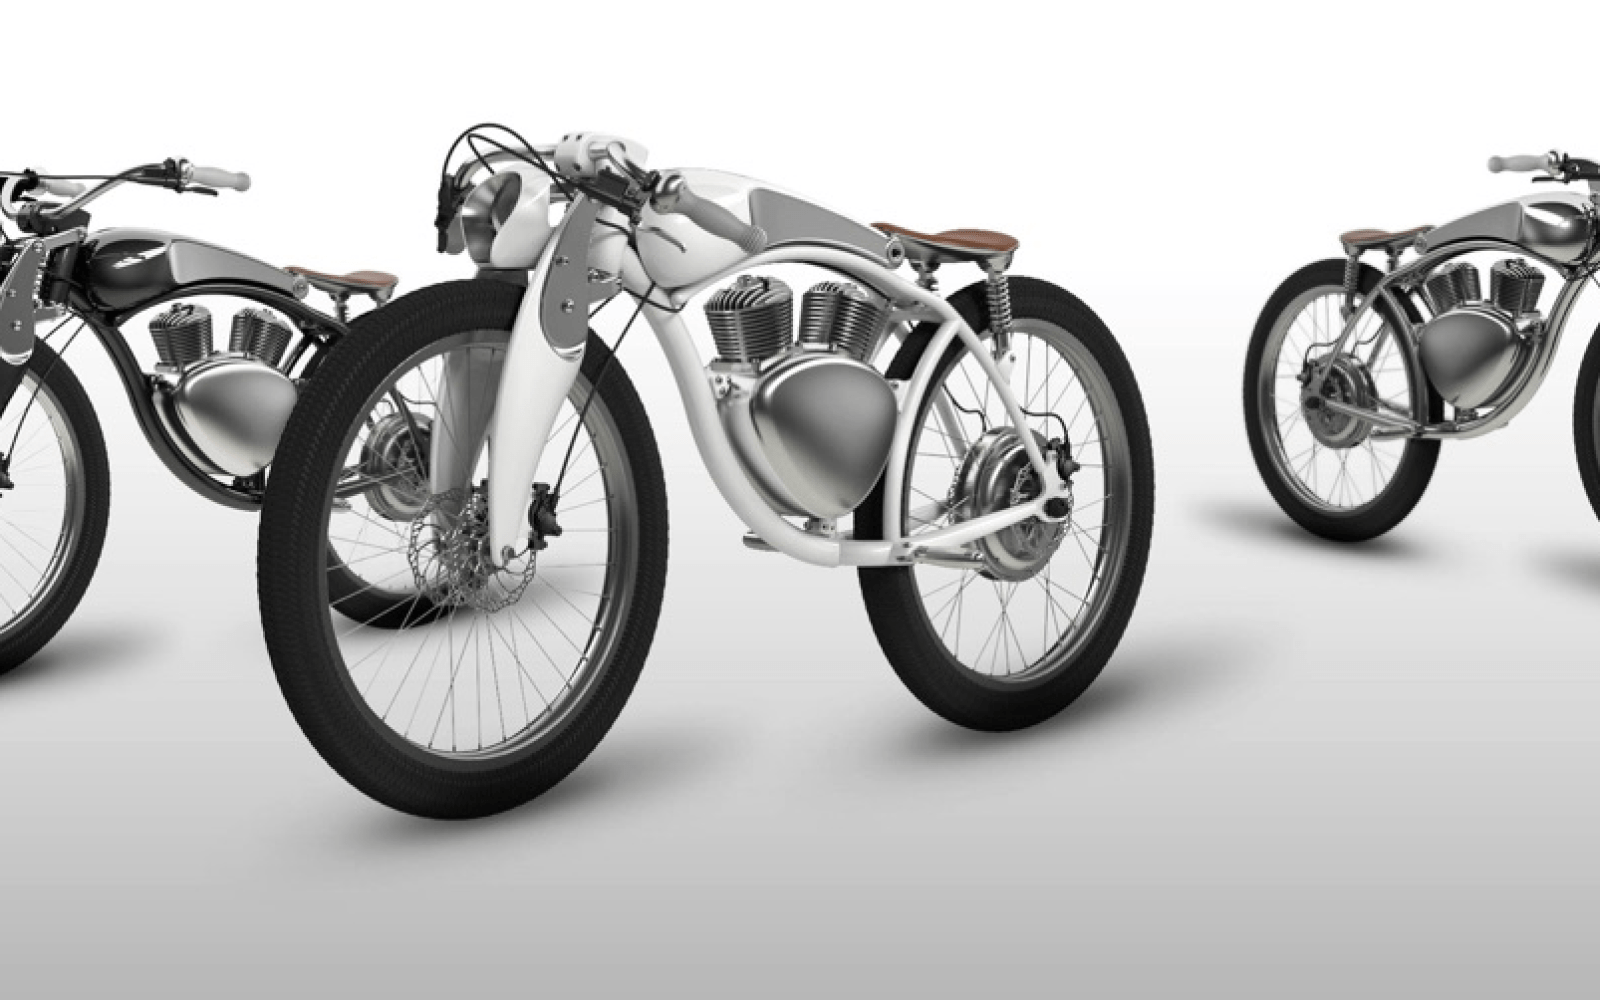 Electric mopeds are coming: Munro Motor launches new $1,700 retro-looking battery-powered bikes